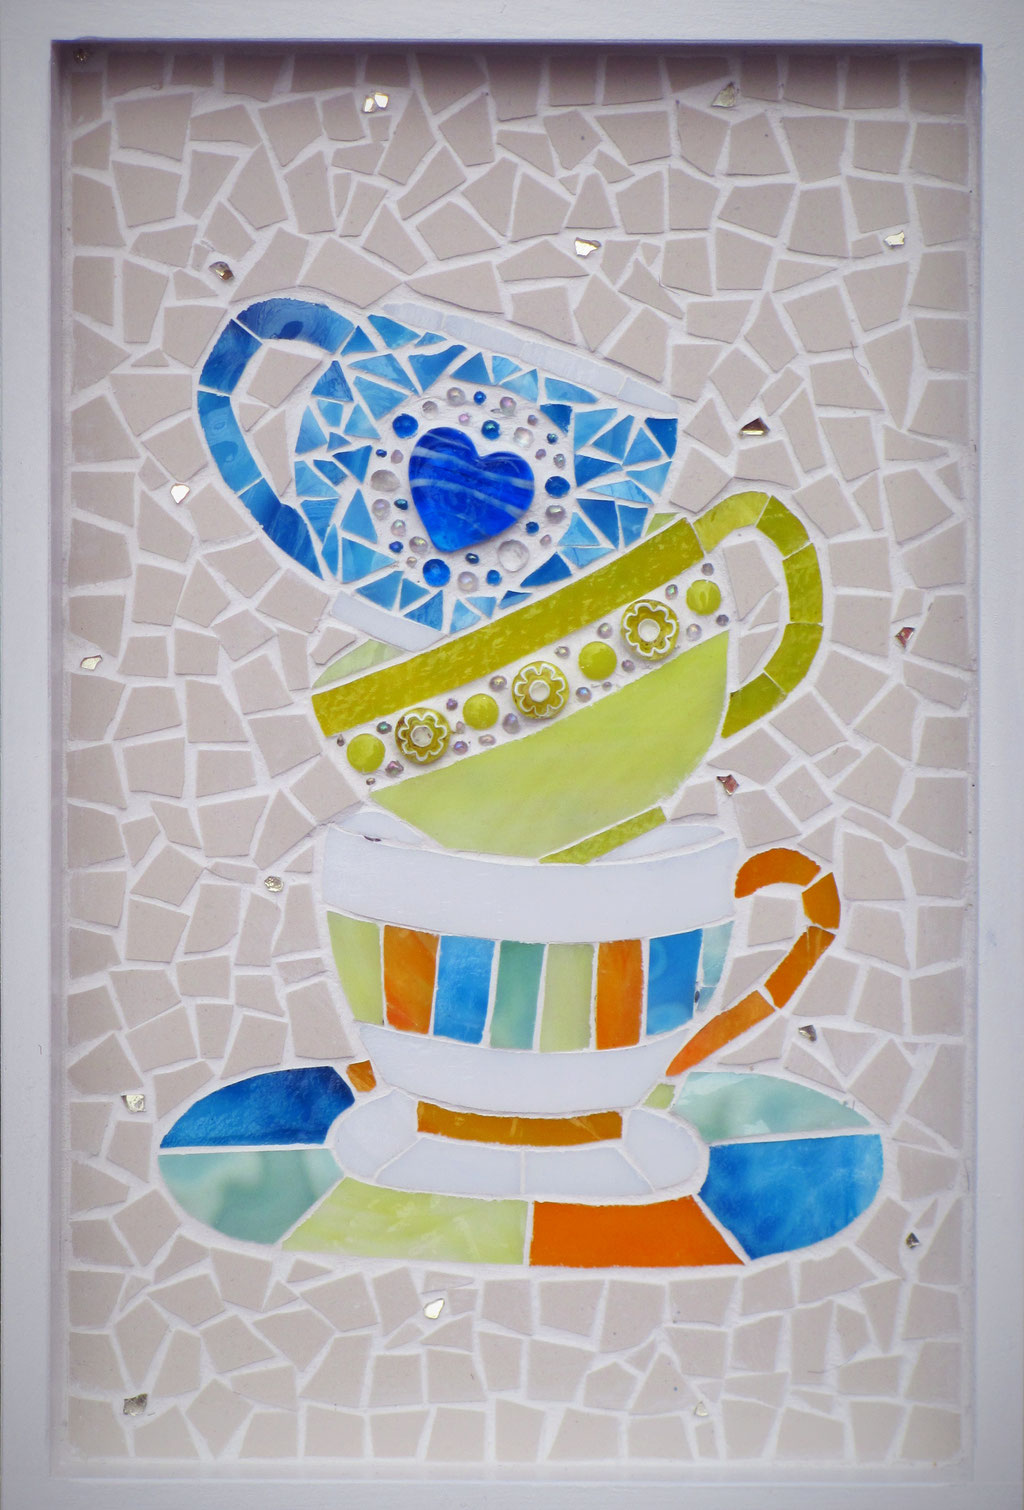 Coffee-Time, 20x30 cm Casani-Rahmen, Tiffanyglas, Millefiori, Steinzeug, Glaskiesel, Crackle-Glas